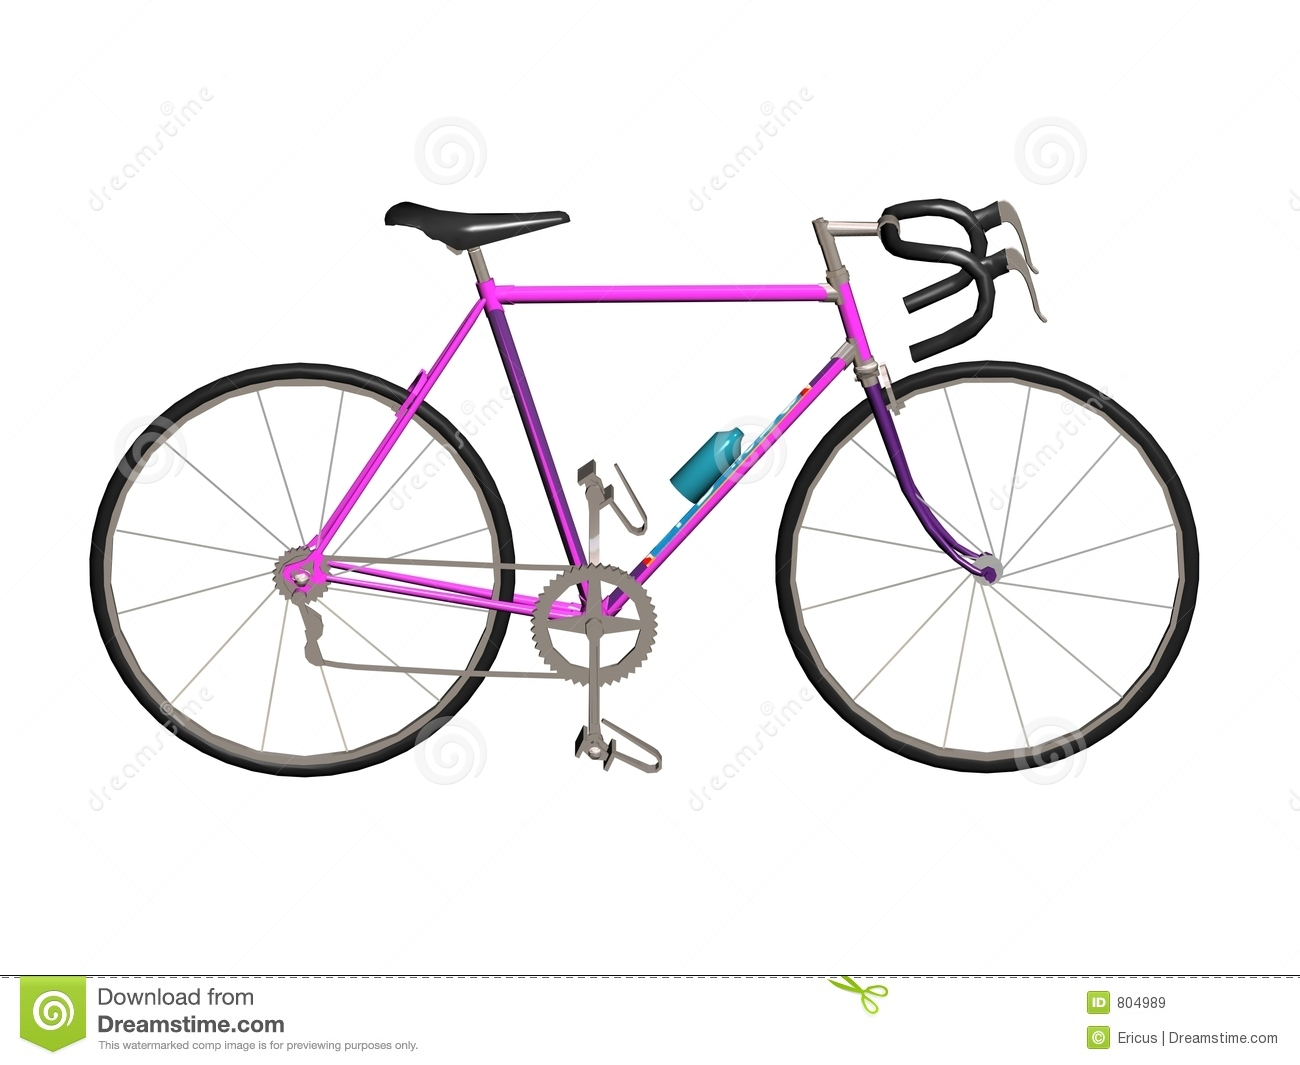 Sport Cycle Royalty Free Stock Images - Image: 804989